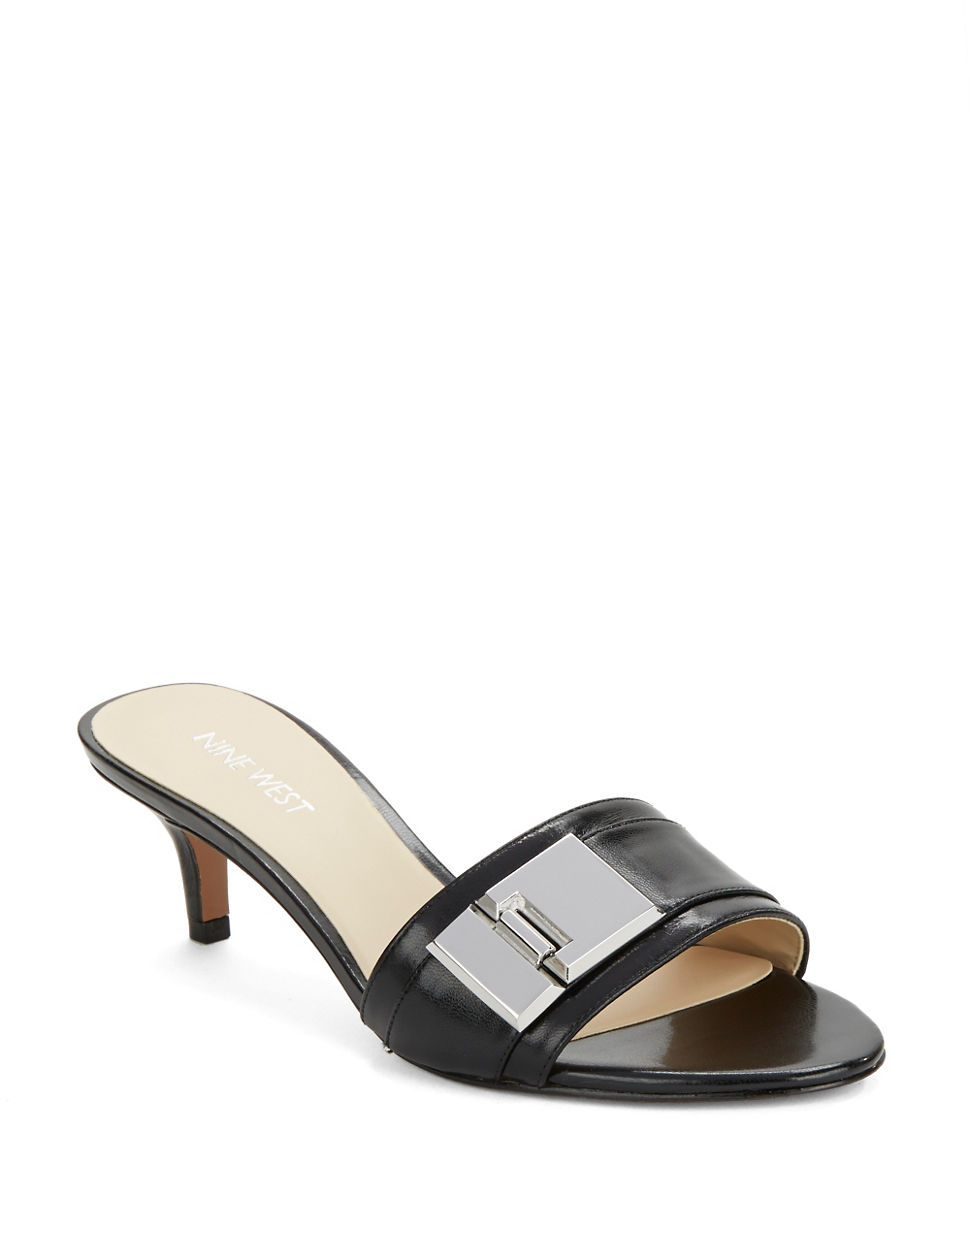 Nine west Yulenia Leather Kitten Heel Sandals in Black | Lyst